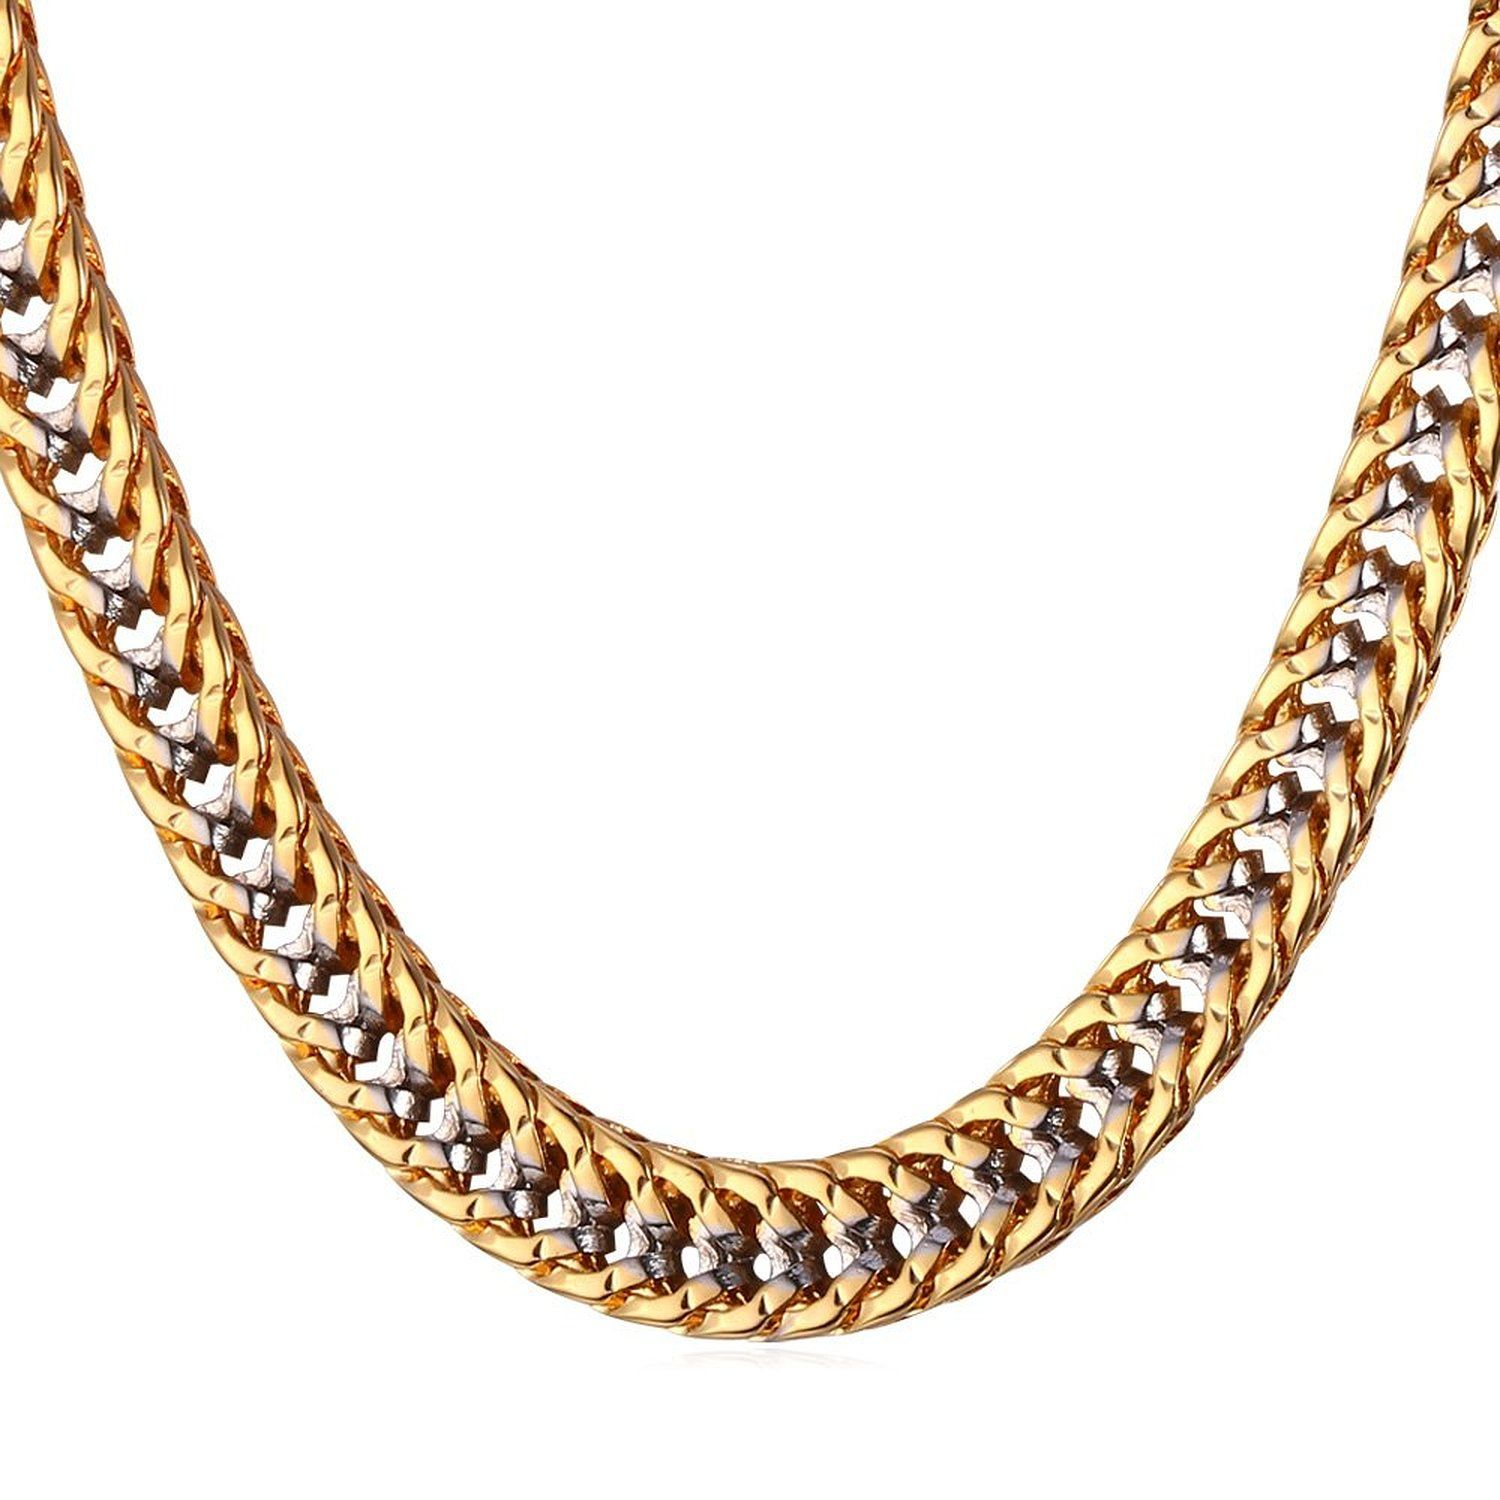 Unisex Two Tone Gold Jewelry Men 6MM Wide Platinum & 18K Gold Plated Franco Curb  Chain Necklace (18